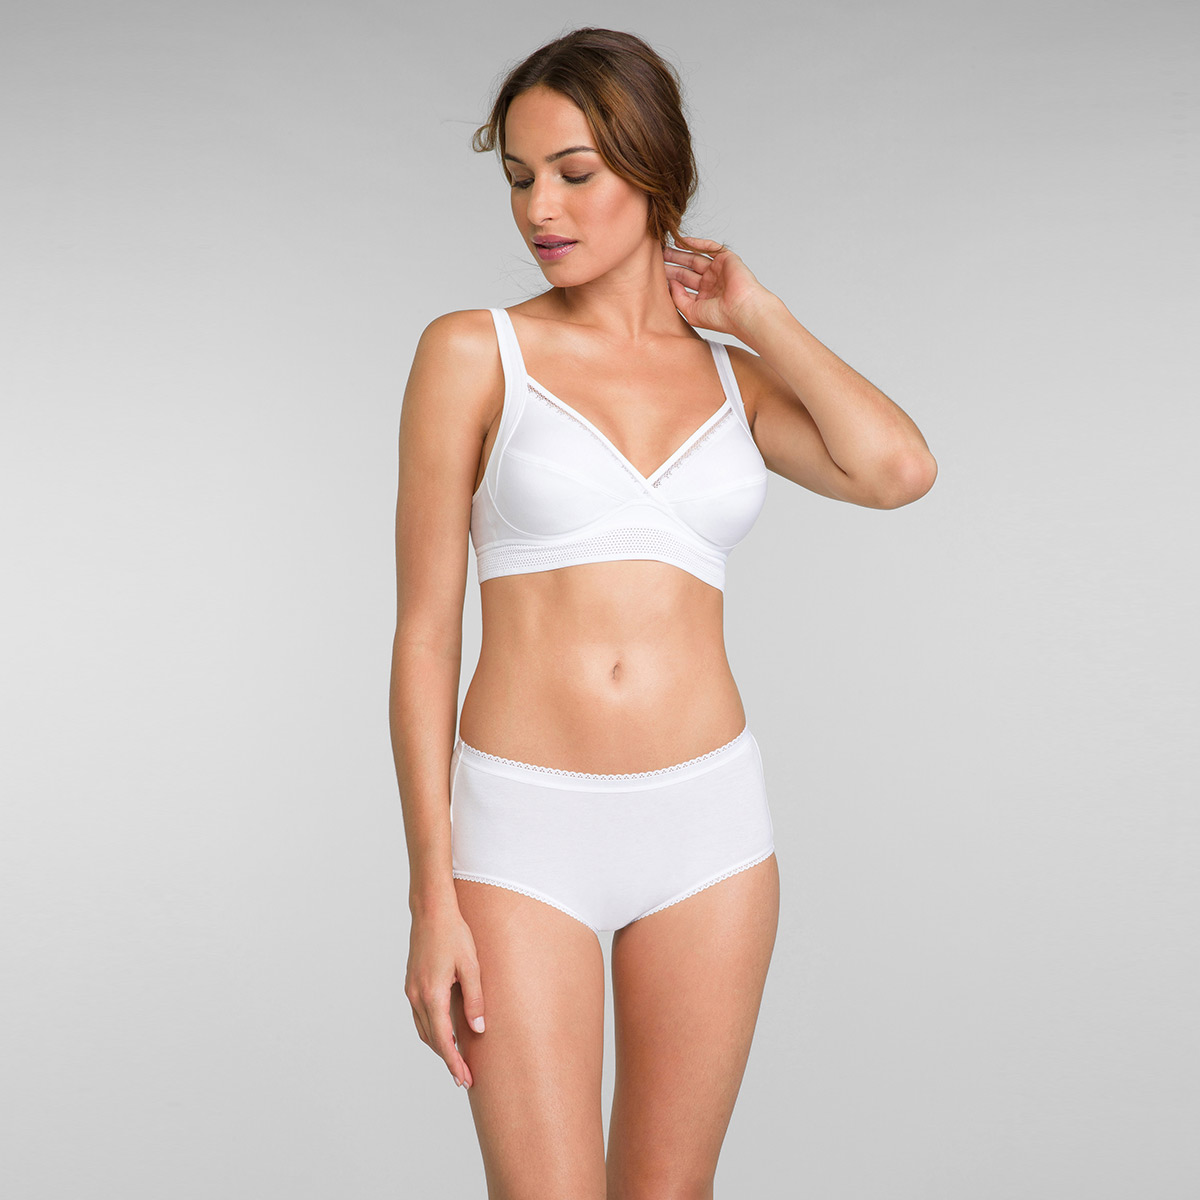 Non Wired Cotton Bra in White Feel Good Support, , PLAYTEX